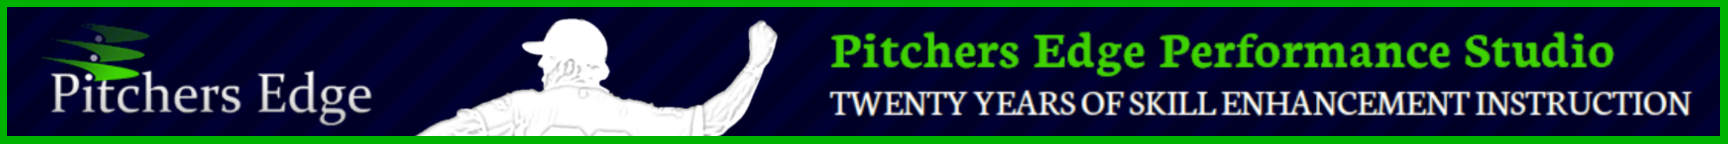 Pitchers Edge Banner (1).png